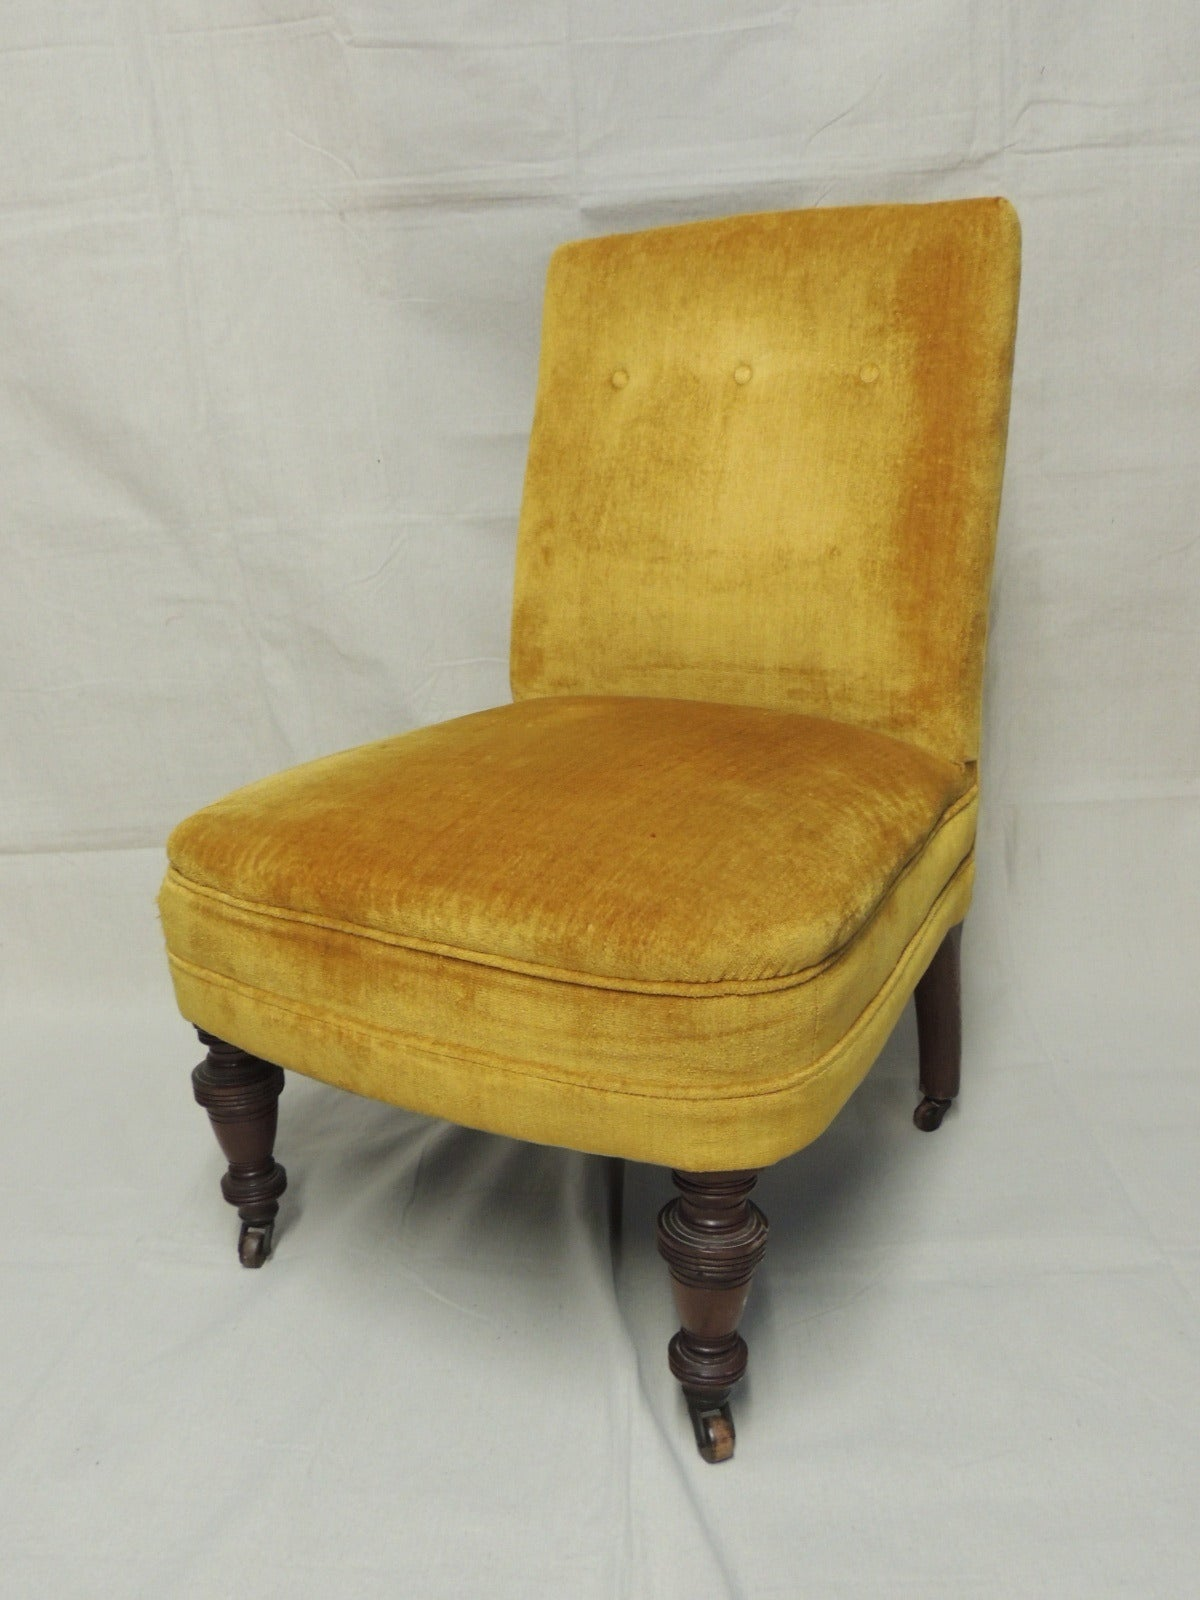 English slipper chair with turned wood legs and casters on all-four legs, tufted back. Upholstered in original silk yellow silk velvet, The velvet has a few stains and a small tear. Great old-world look as-is, but the frame is strong and the lines